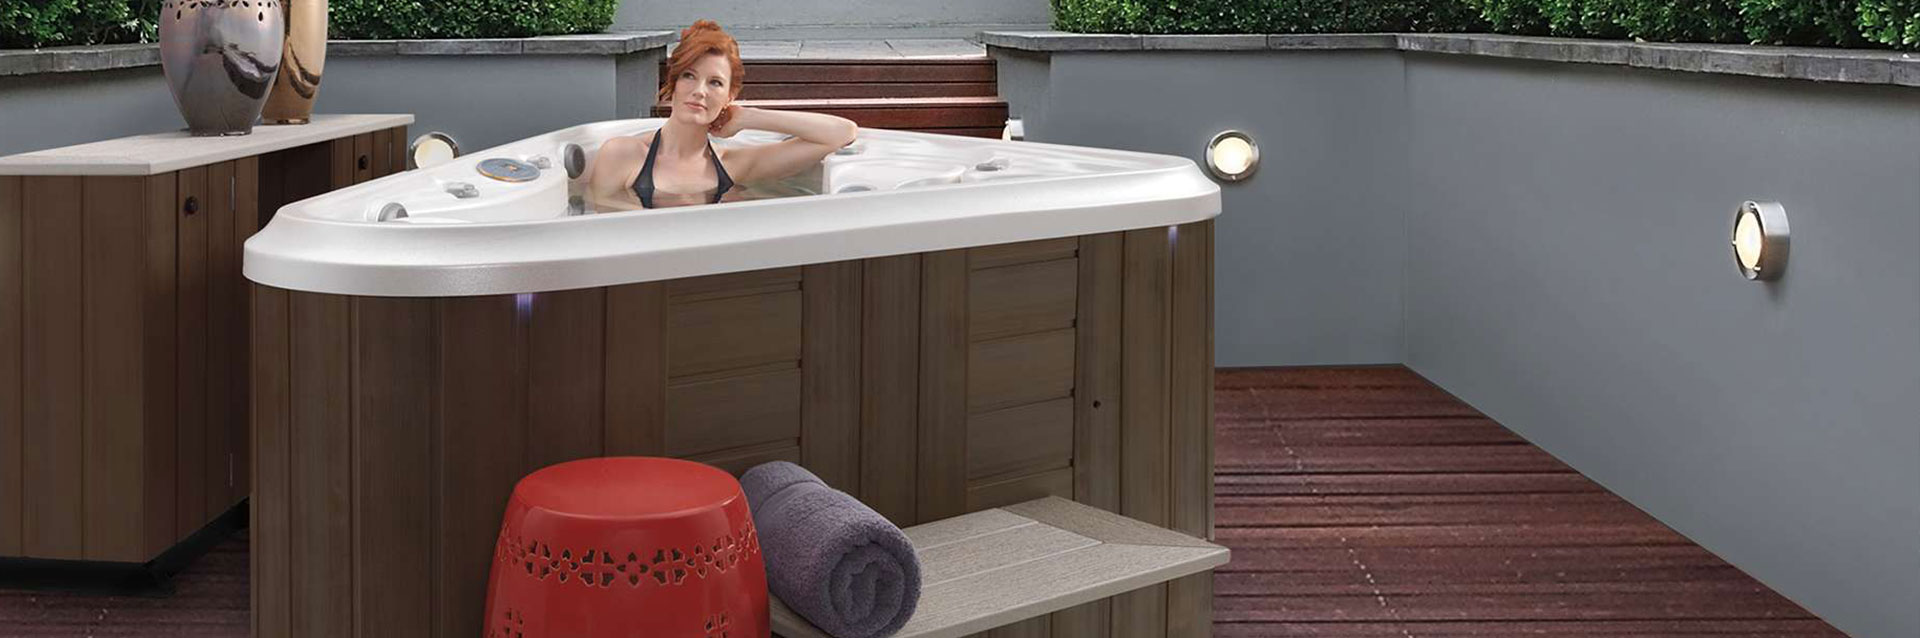 Best 2 Person Hot Tubs Plug And Play Hot Tubs Marquis